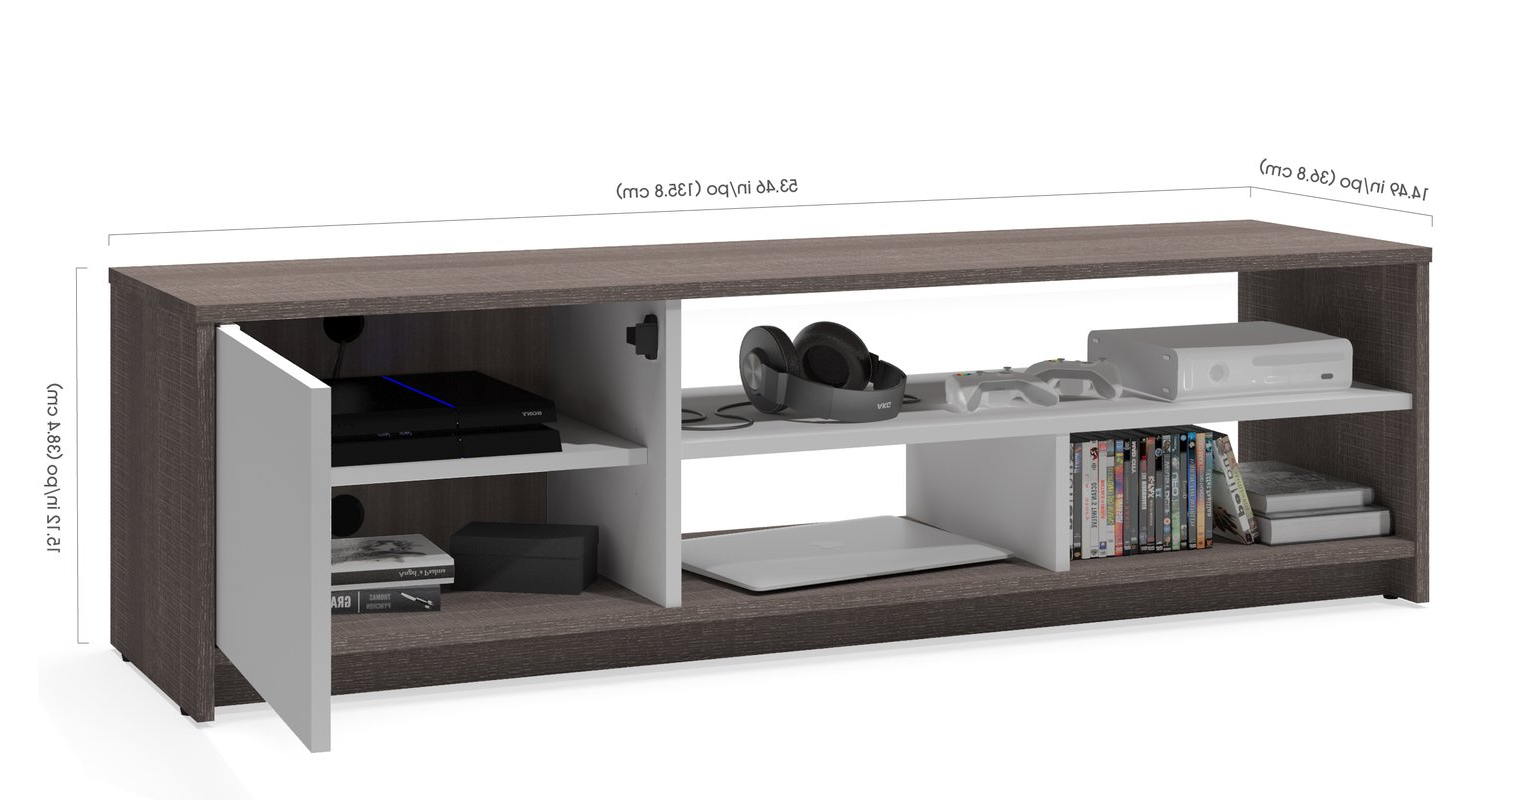 Table Tv Stand Chapell 2 Piece Storage Coffee Table – Furnish Ideas With Preferred Coffee Tables And Tv Stands Sets (View 13 of 20)